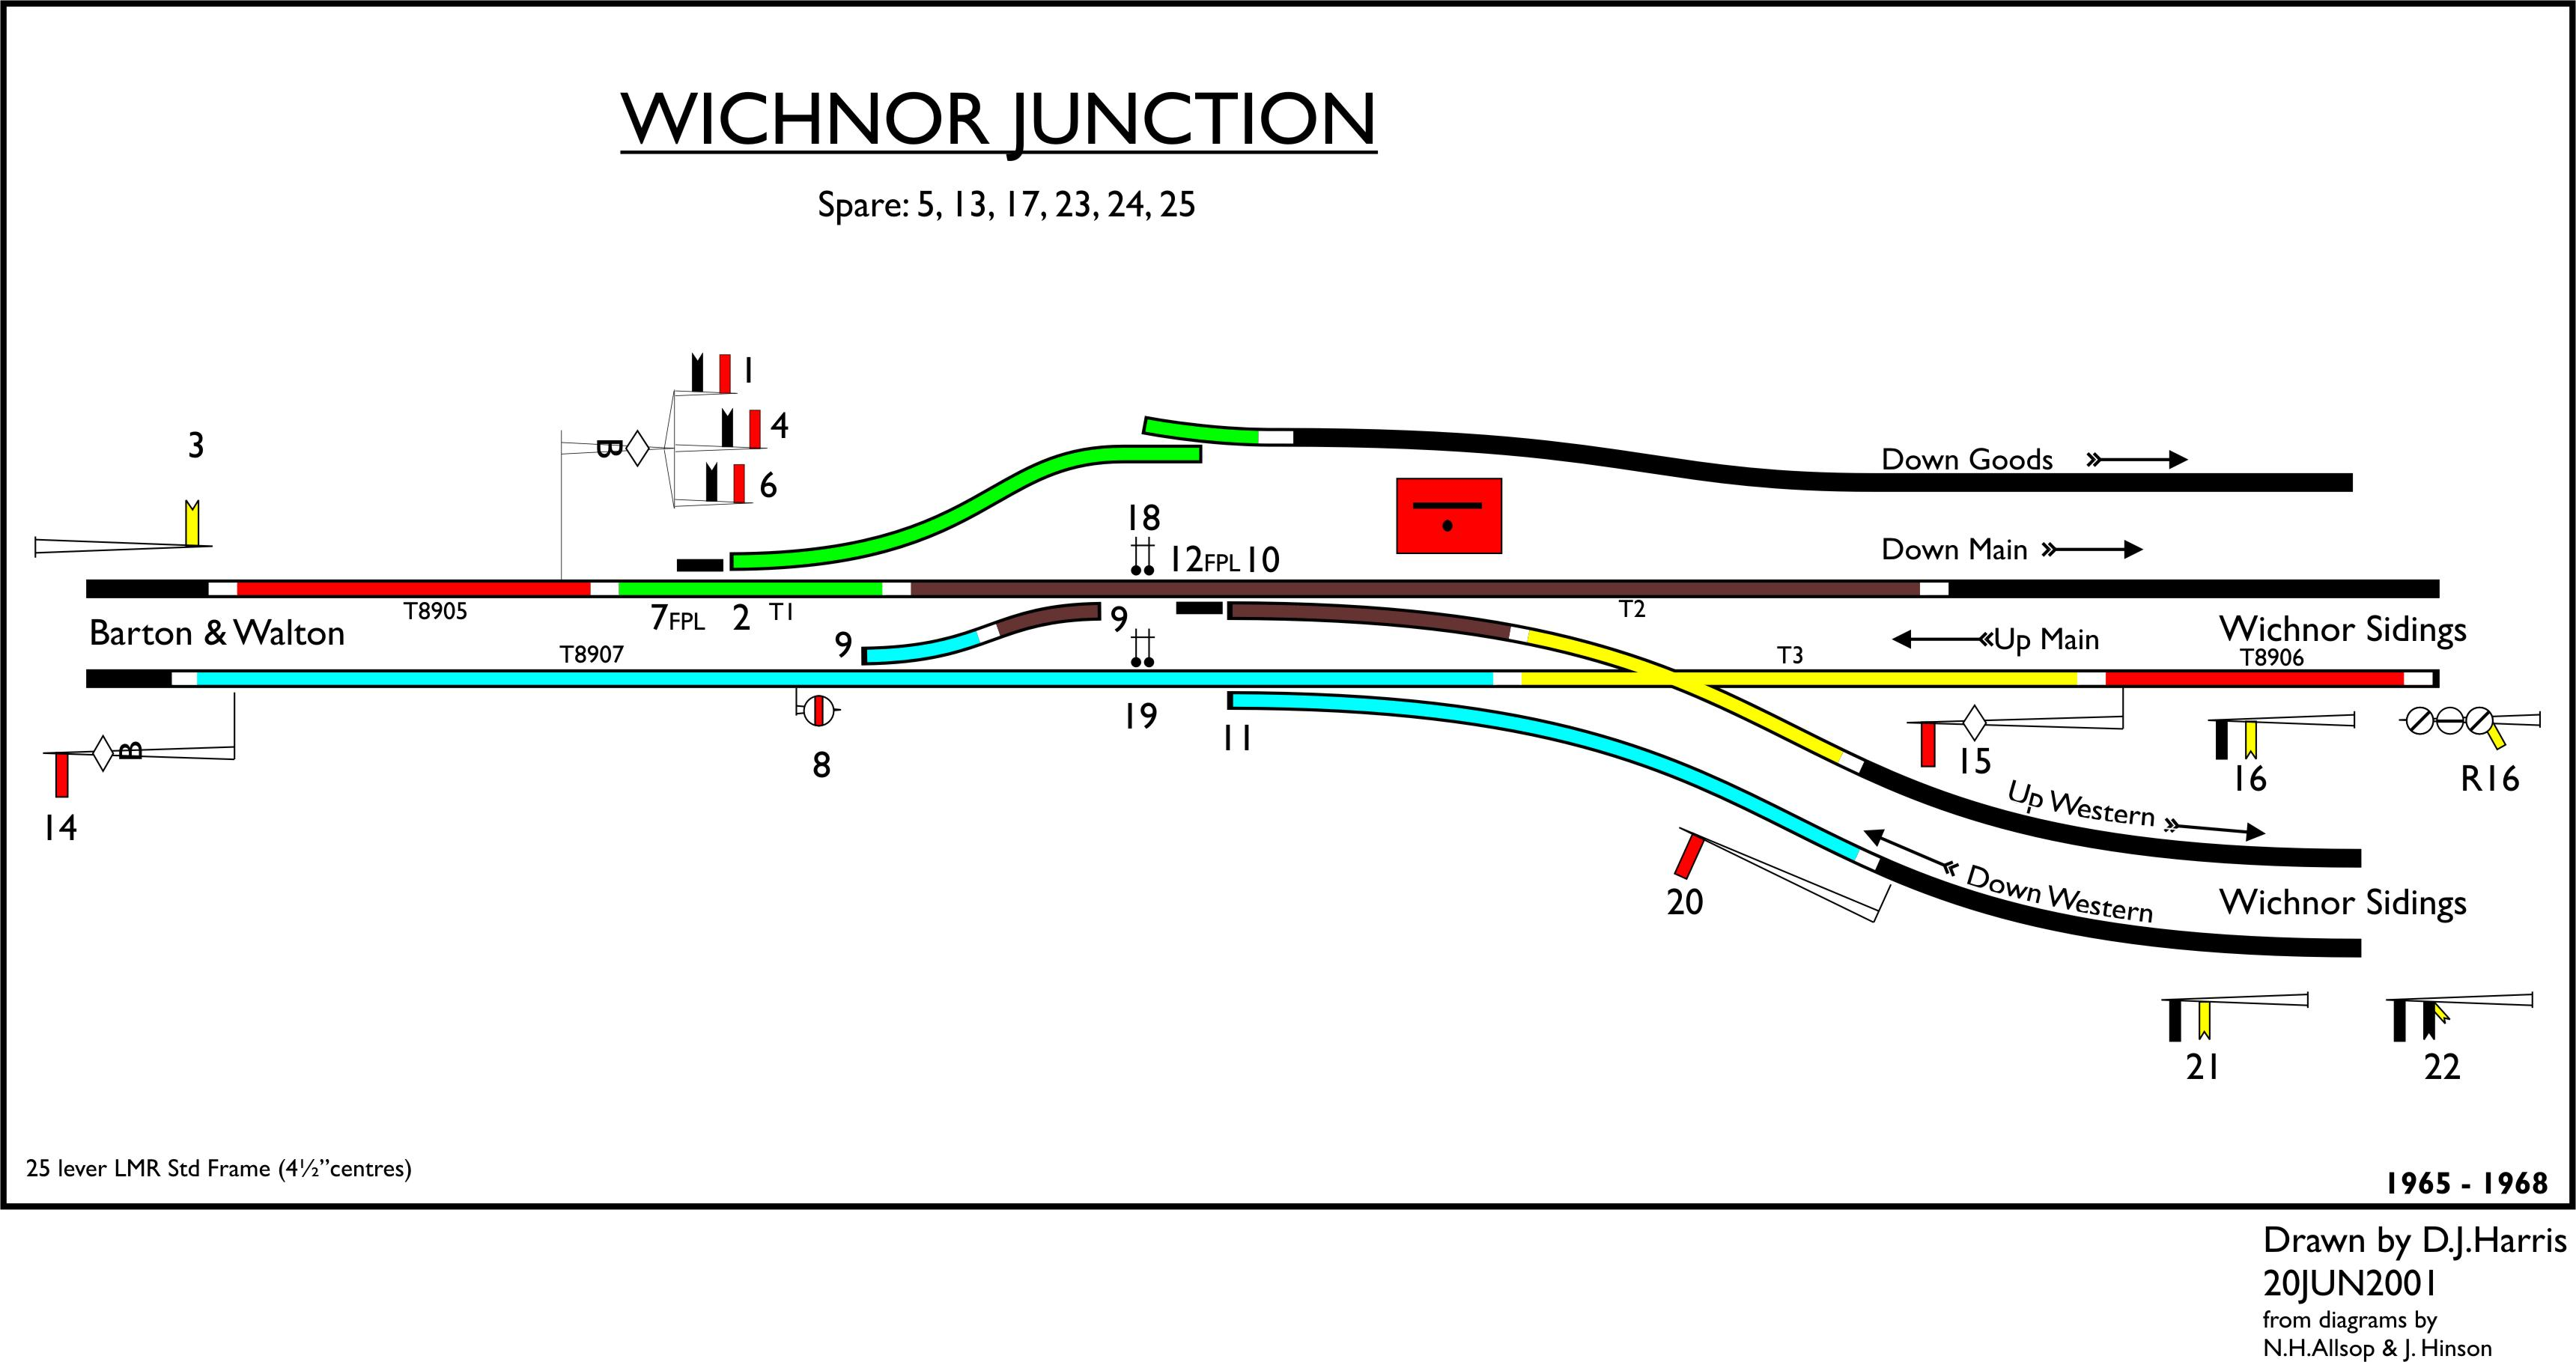 1965 diagram of Wichnor Junction